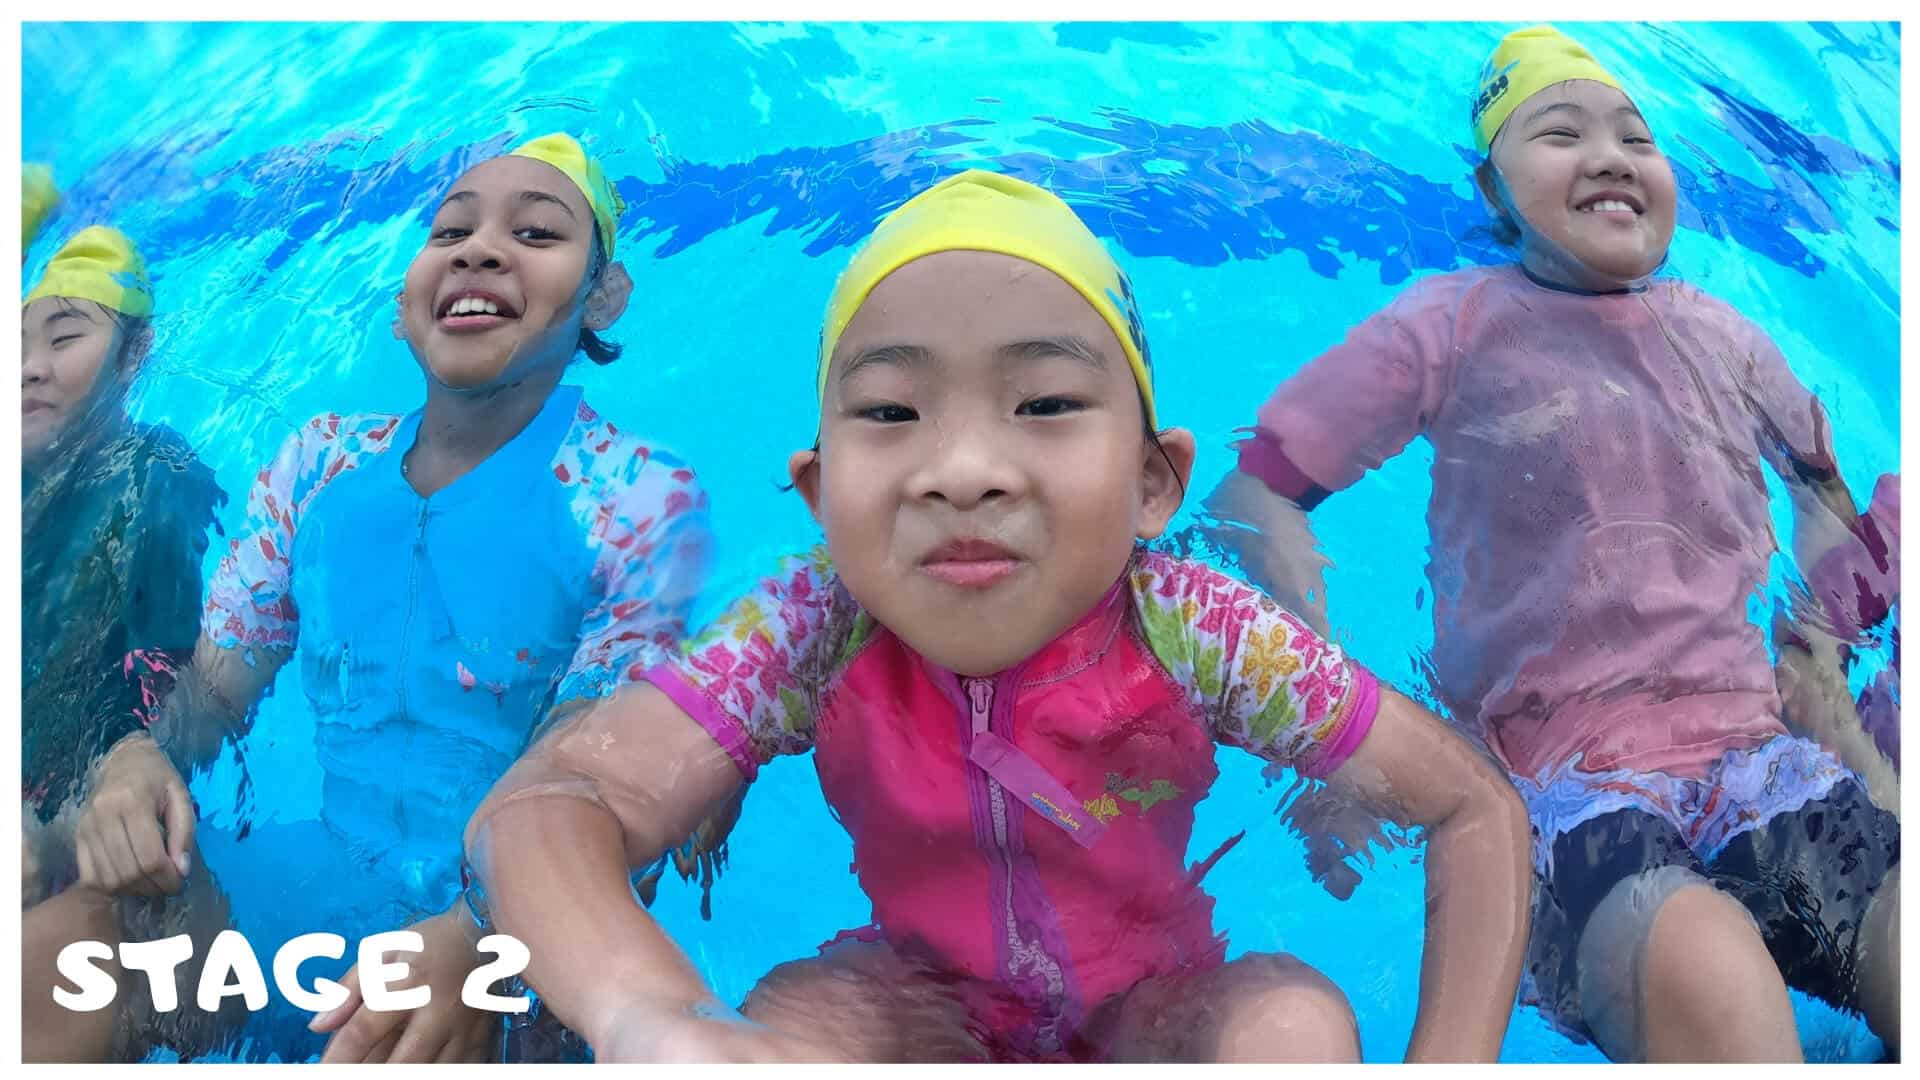 Stage 2 children swimming lessons singapore